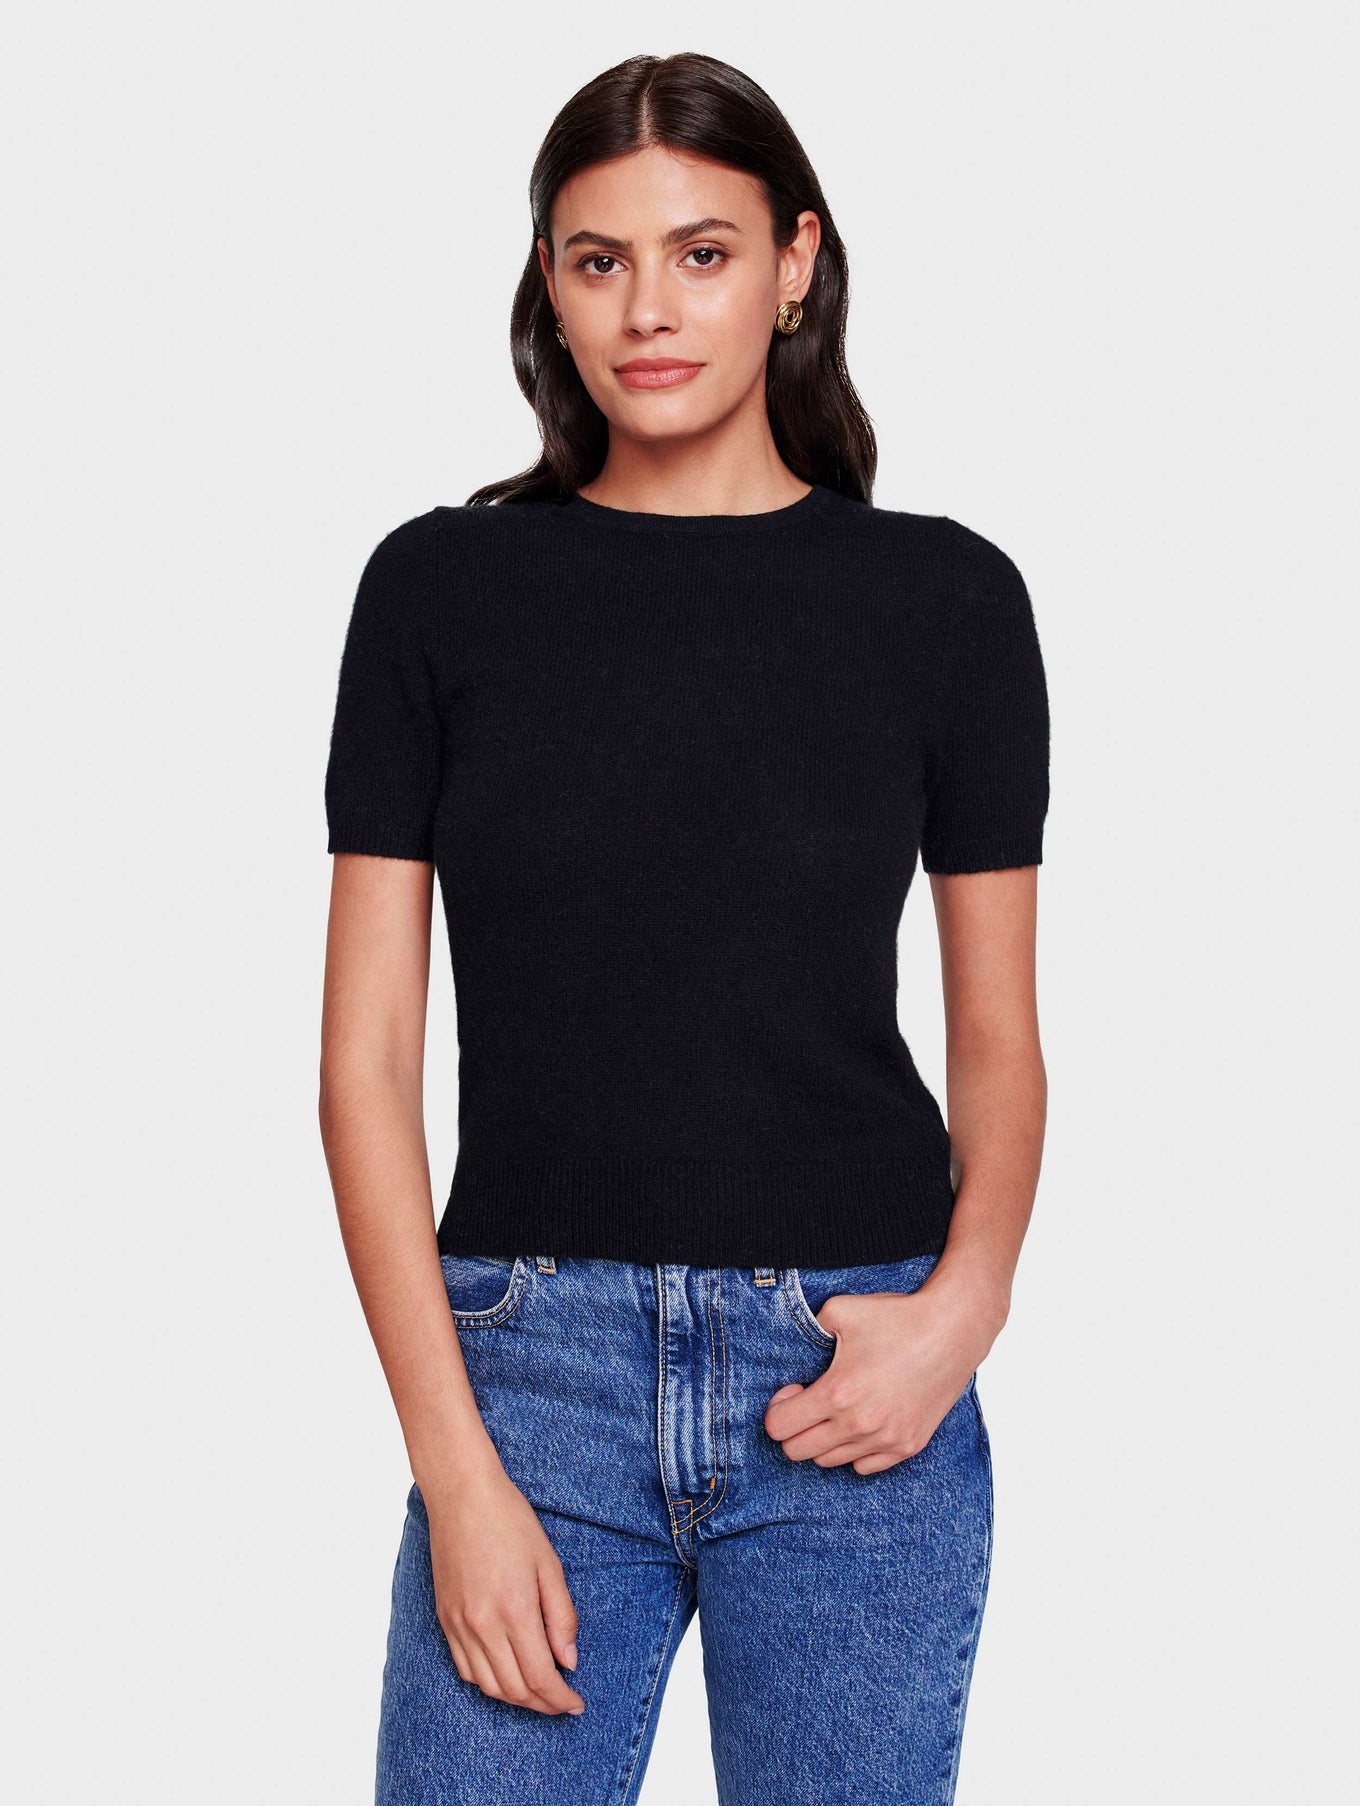 Cashmere Fitted Tee - Black - Image 2